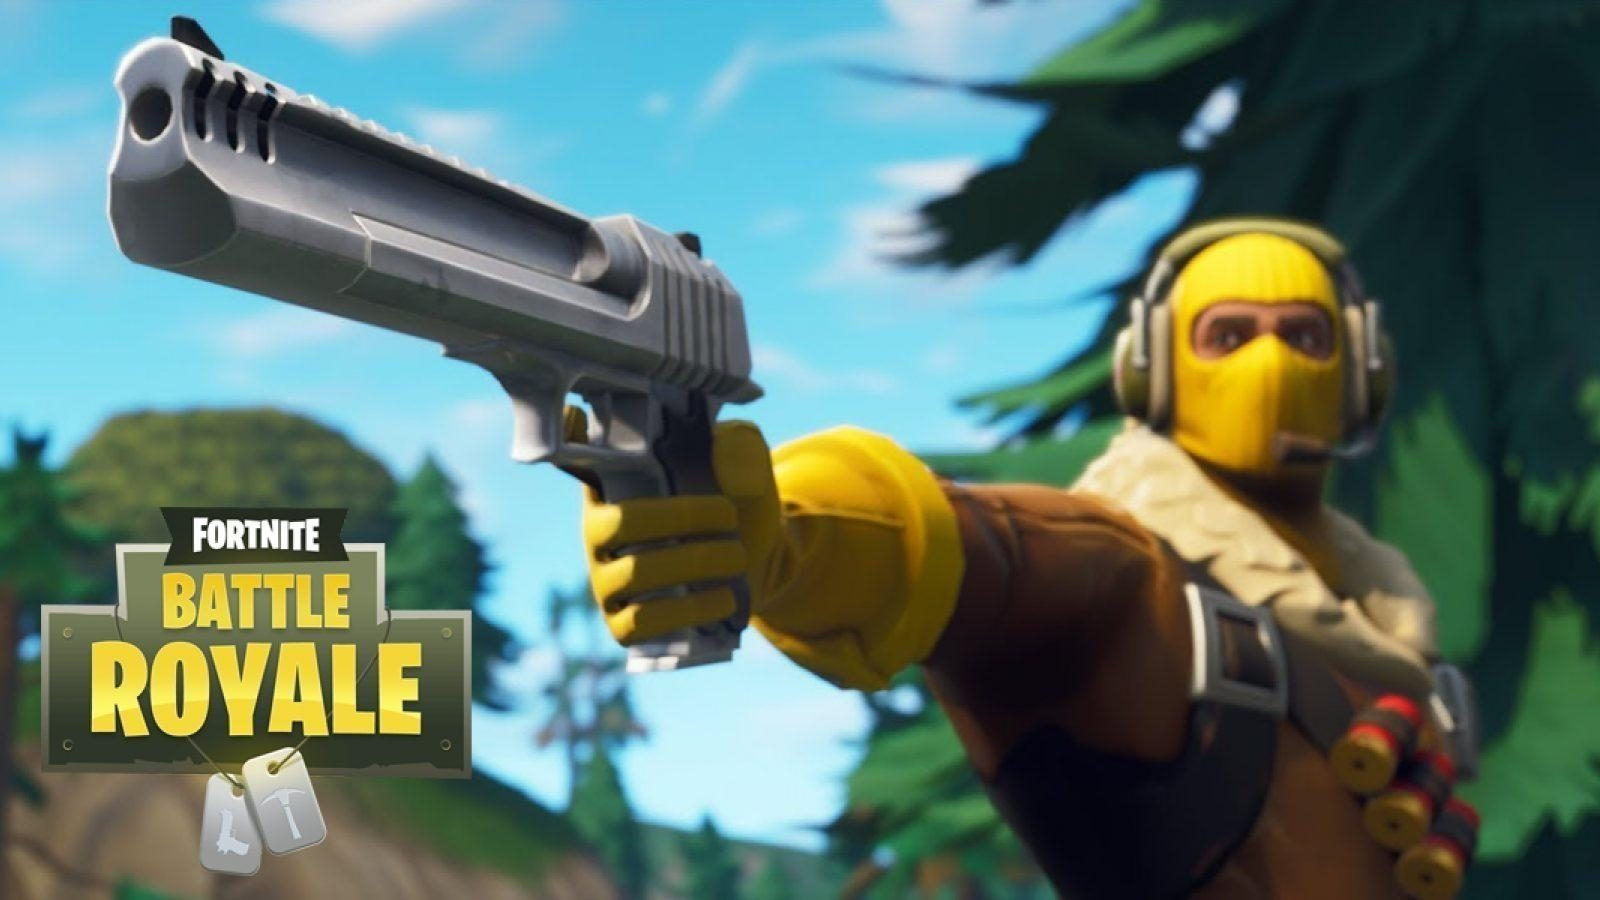 Top Battle Royale Games On Mobile Phones Like PUBG Mobile To